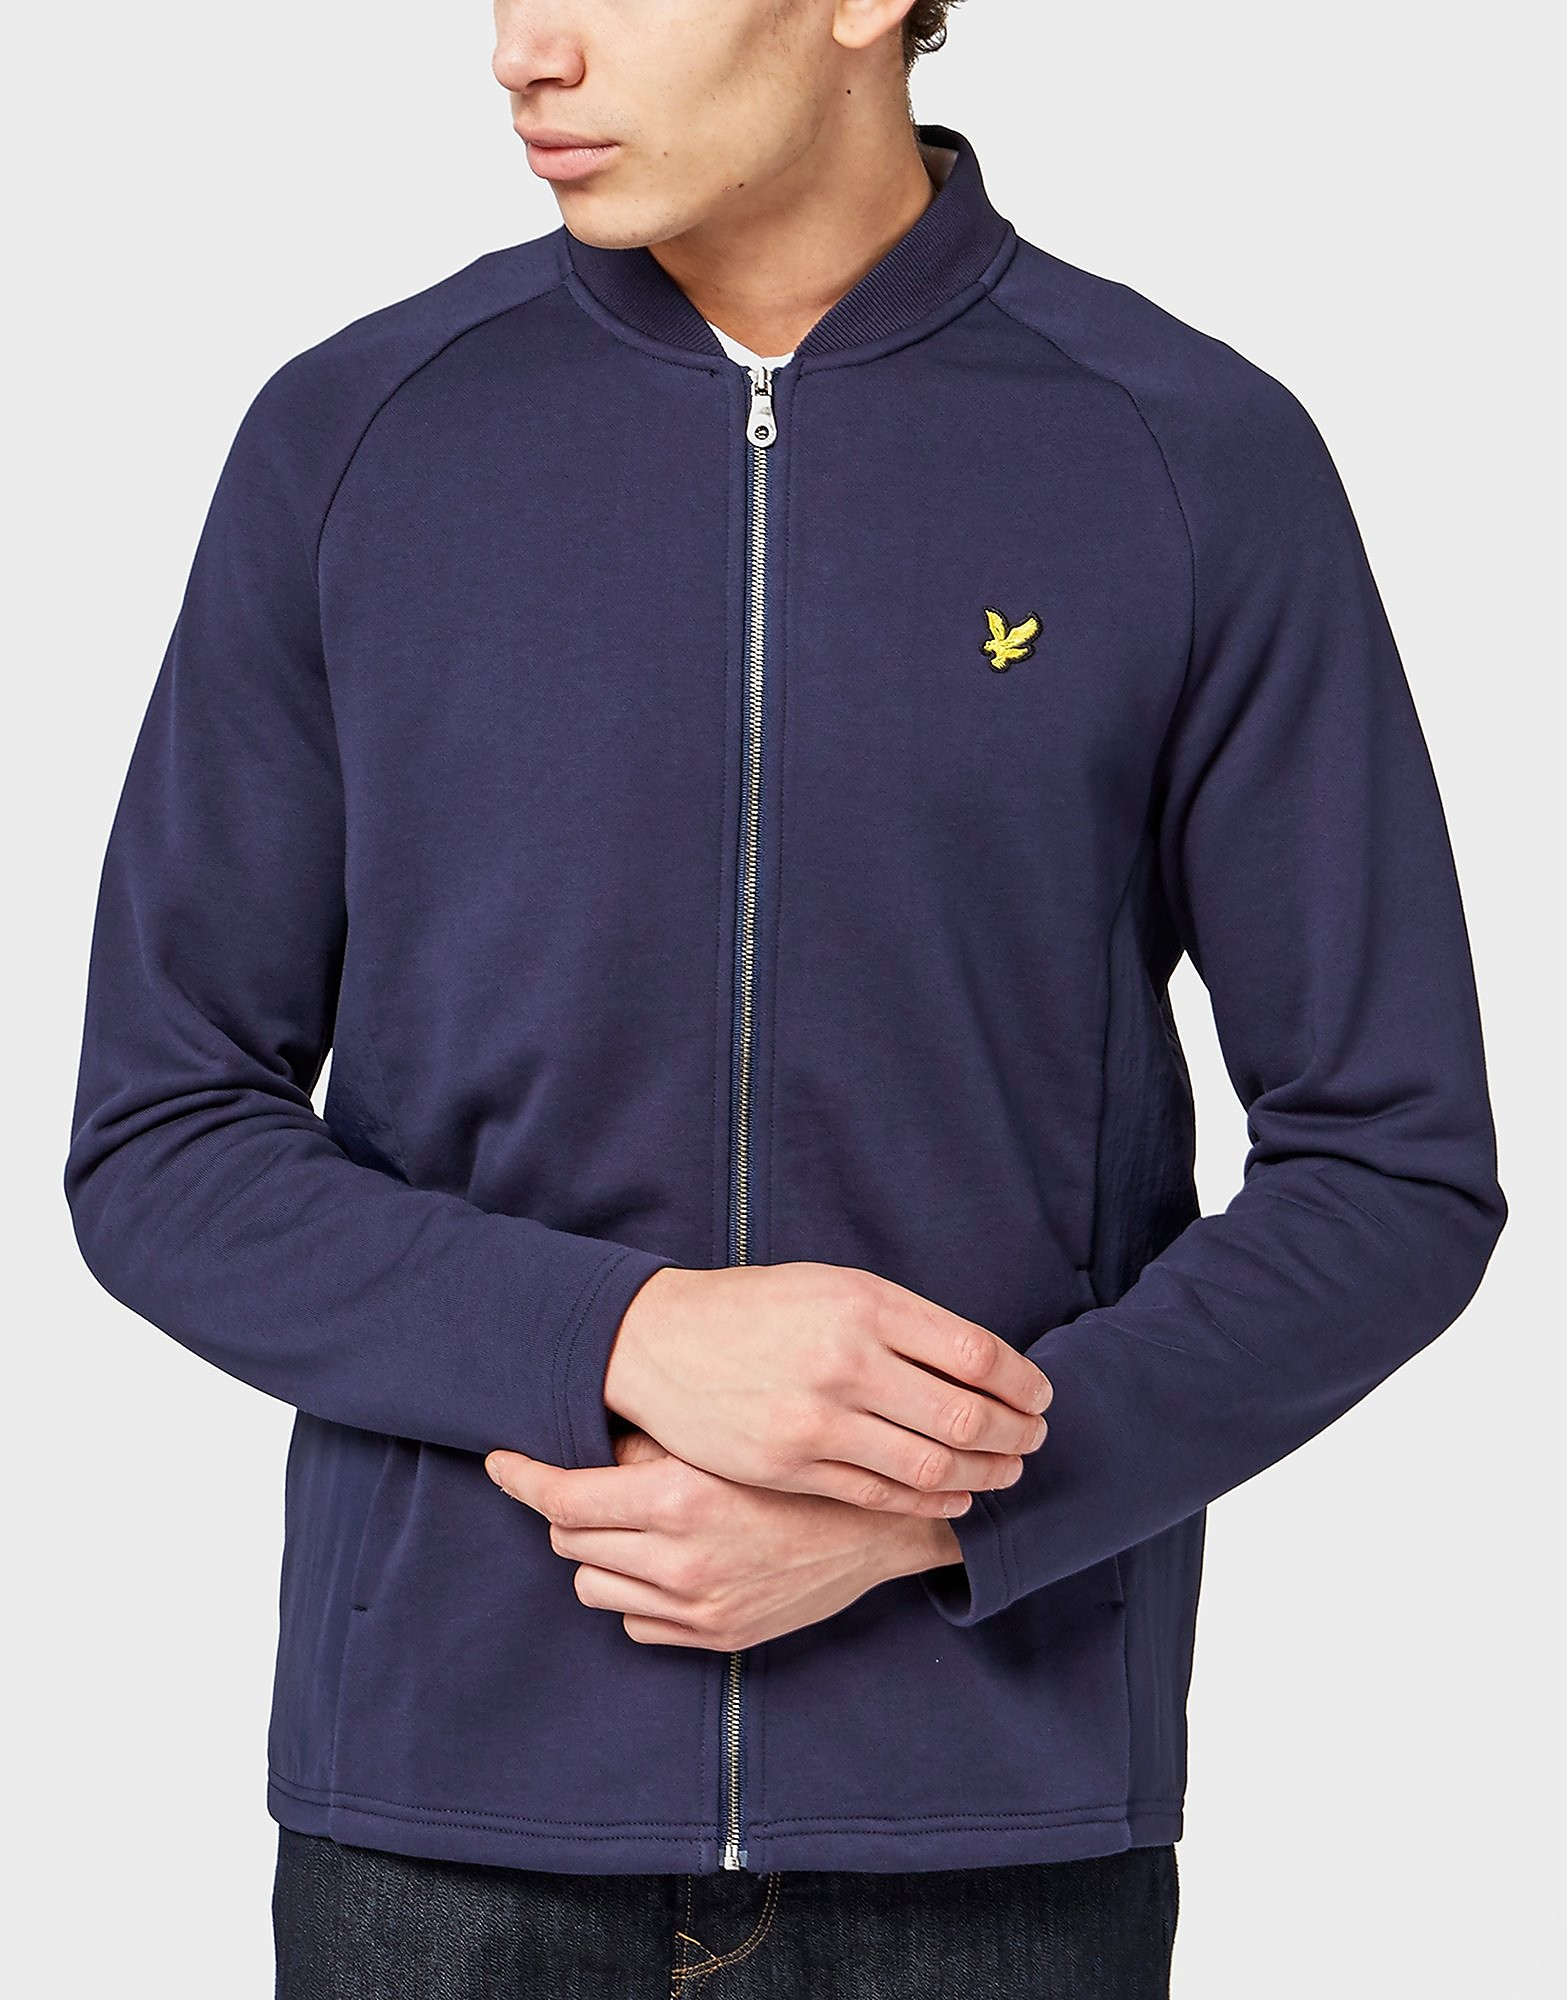 Lyle & Scott Seam Pocket Bomber Track Top